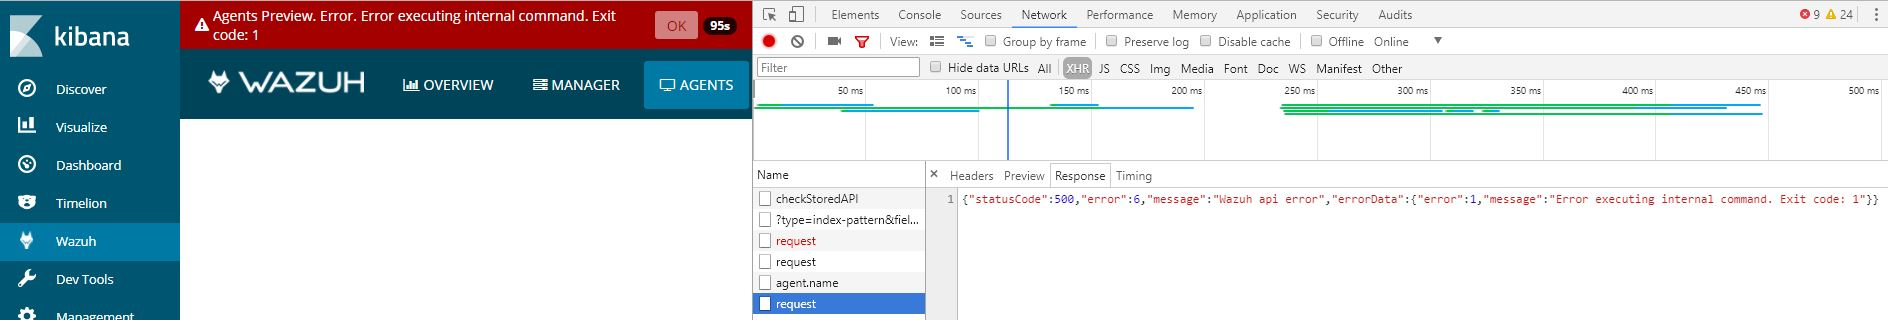 Agents-Preview: Error doing a request to Kibana API. (code -2) when ...